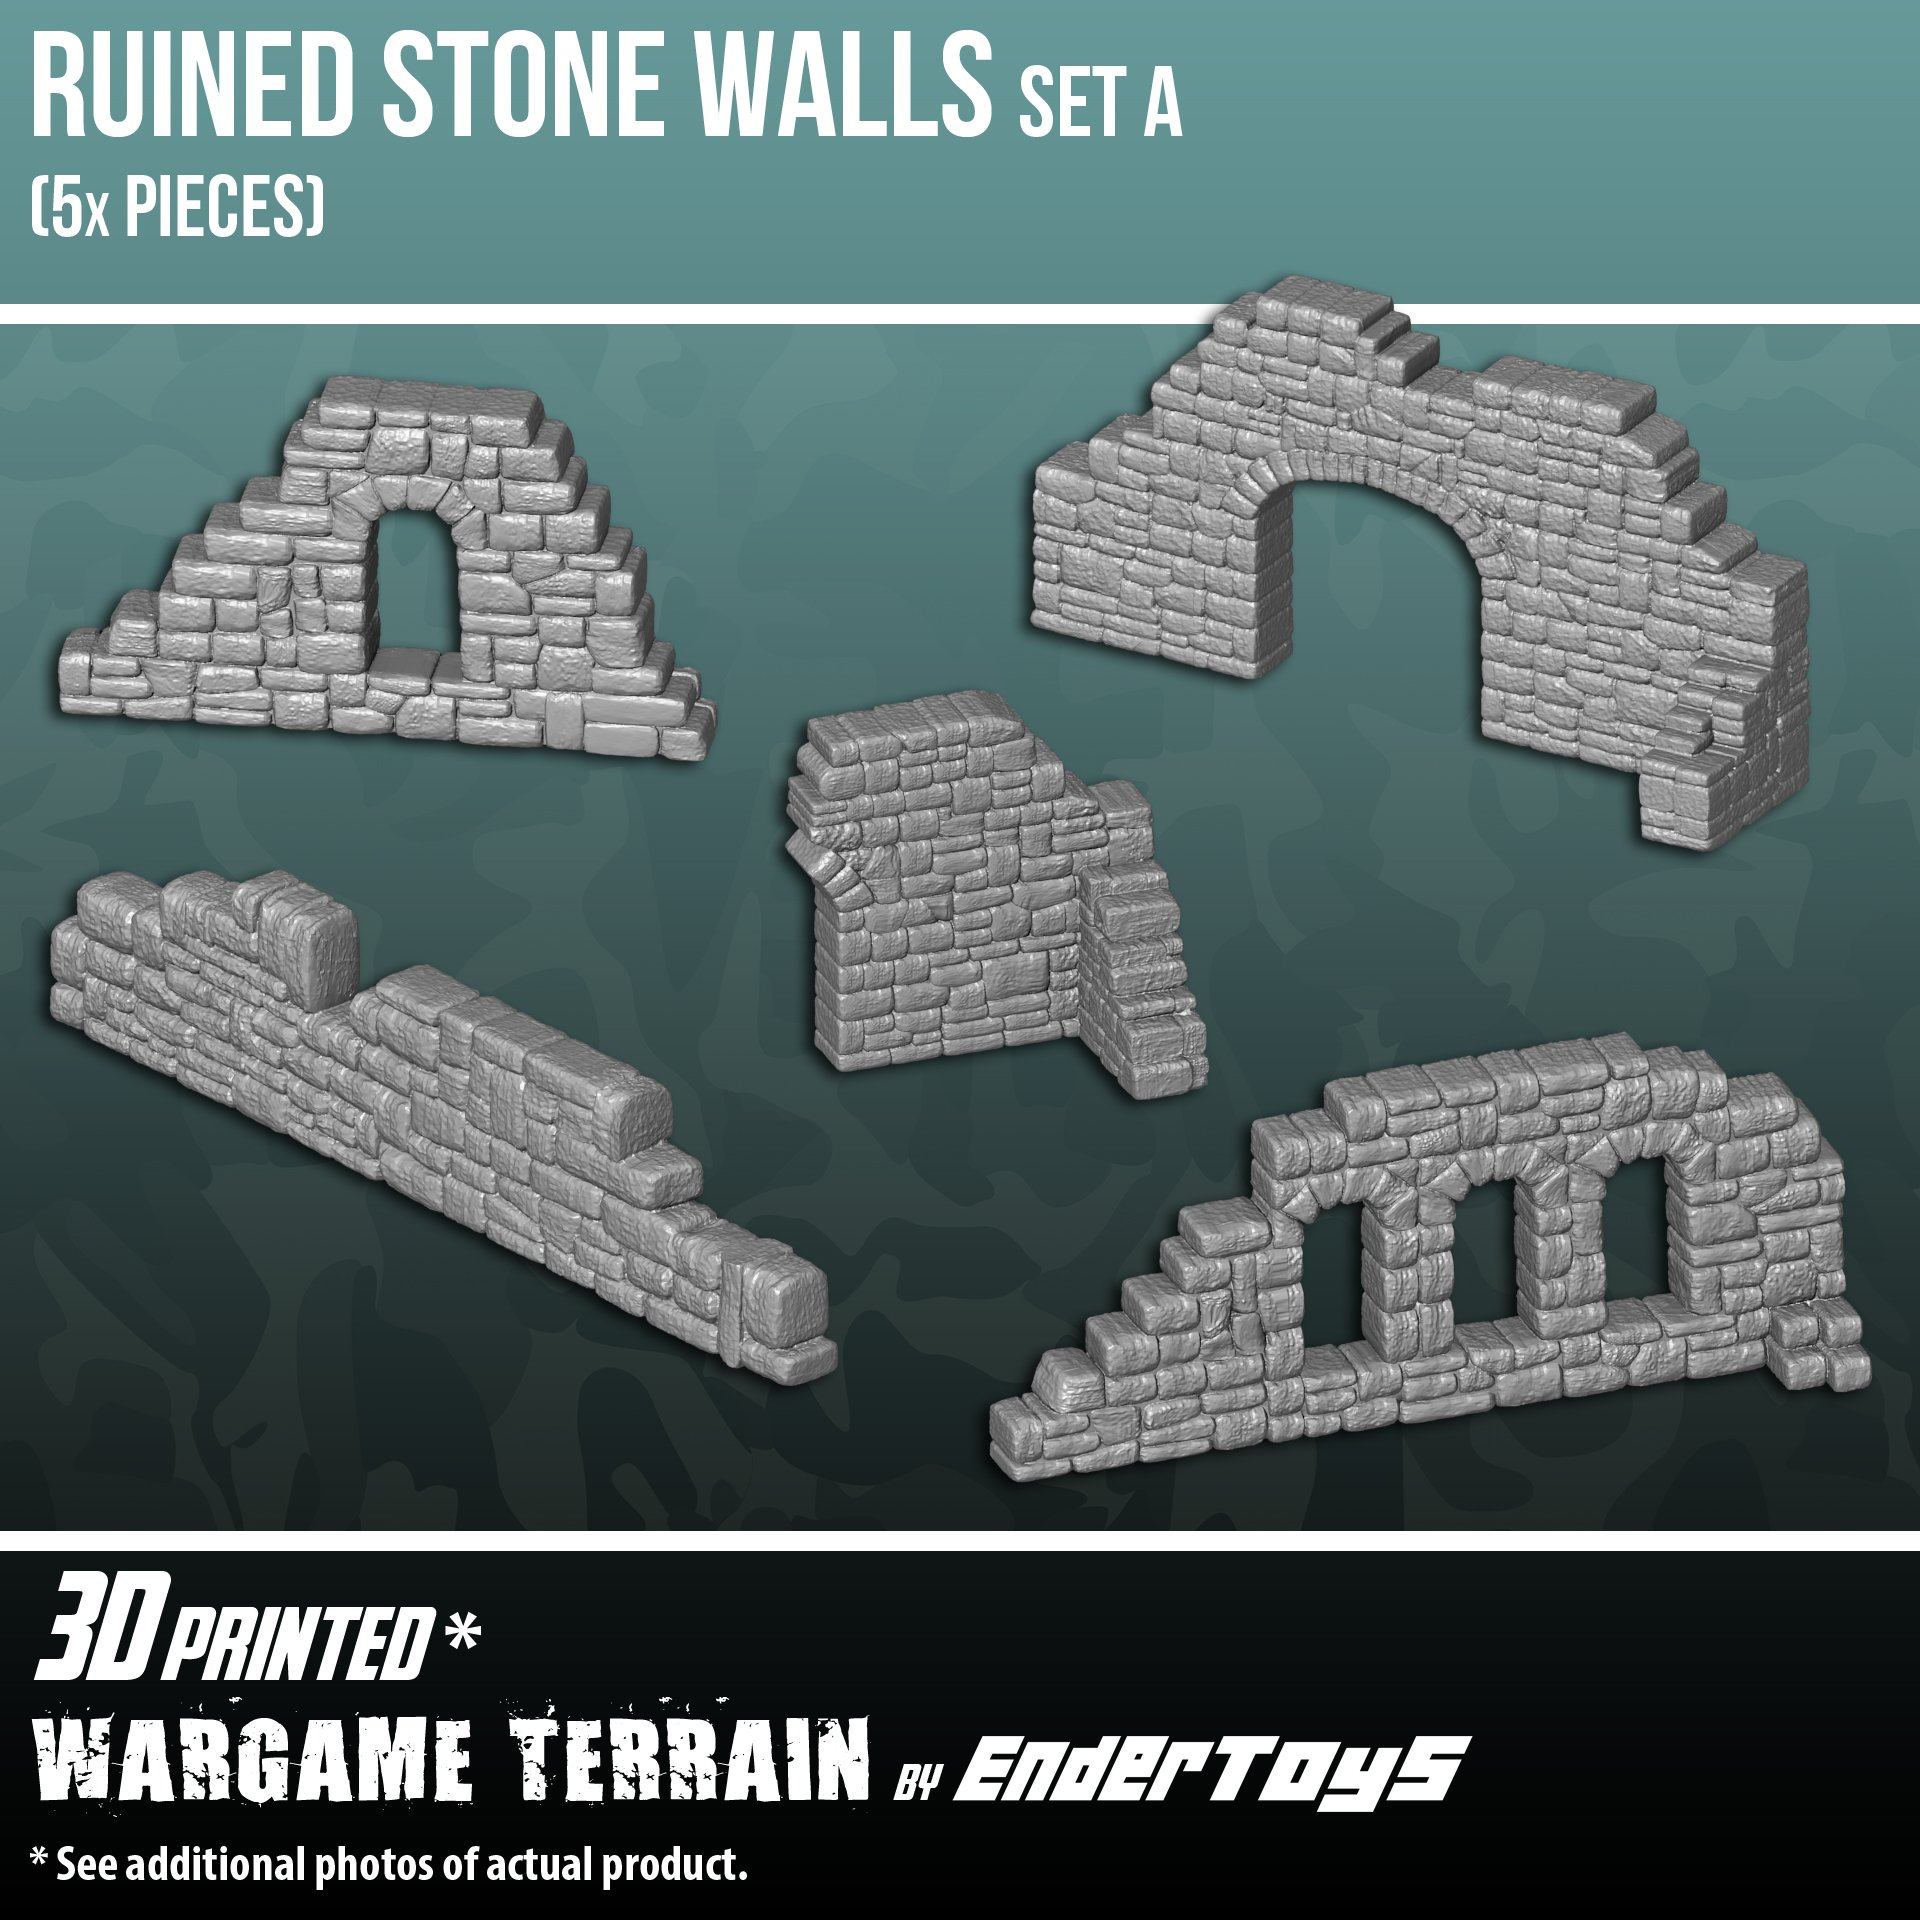 Ruined Stone Walls Set A, Terrain Scenery for Tabletop 28mm Miniatures Wargame, 3D Printed and Paintable, EnderToys